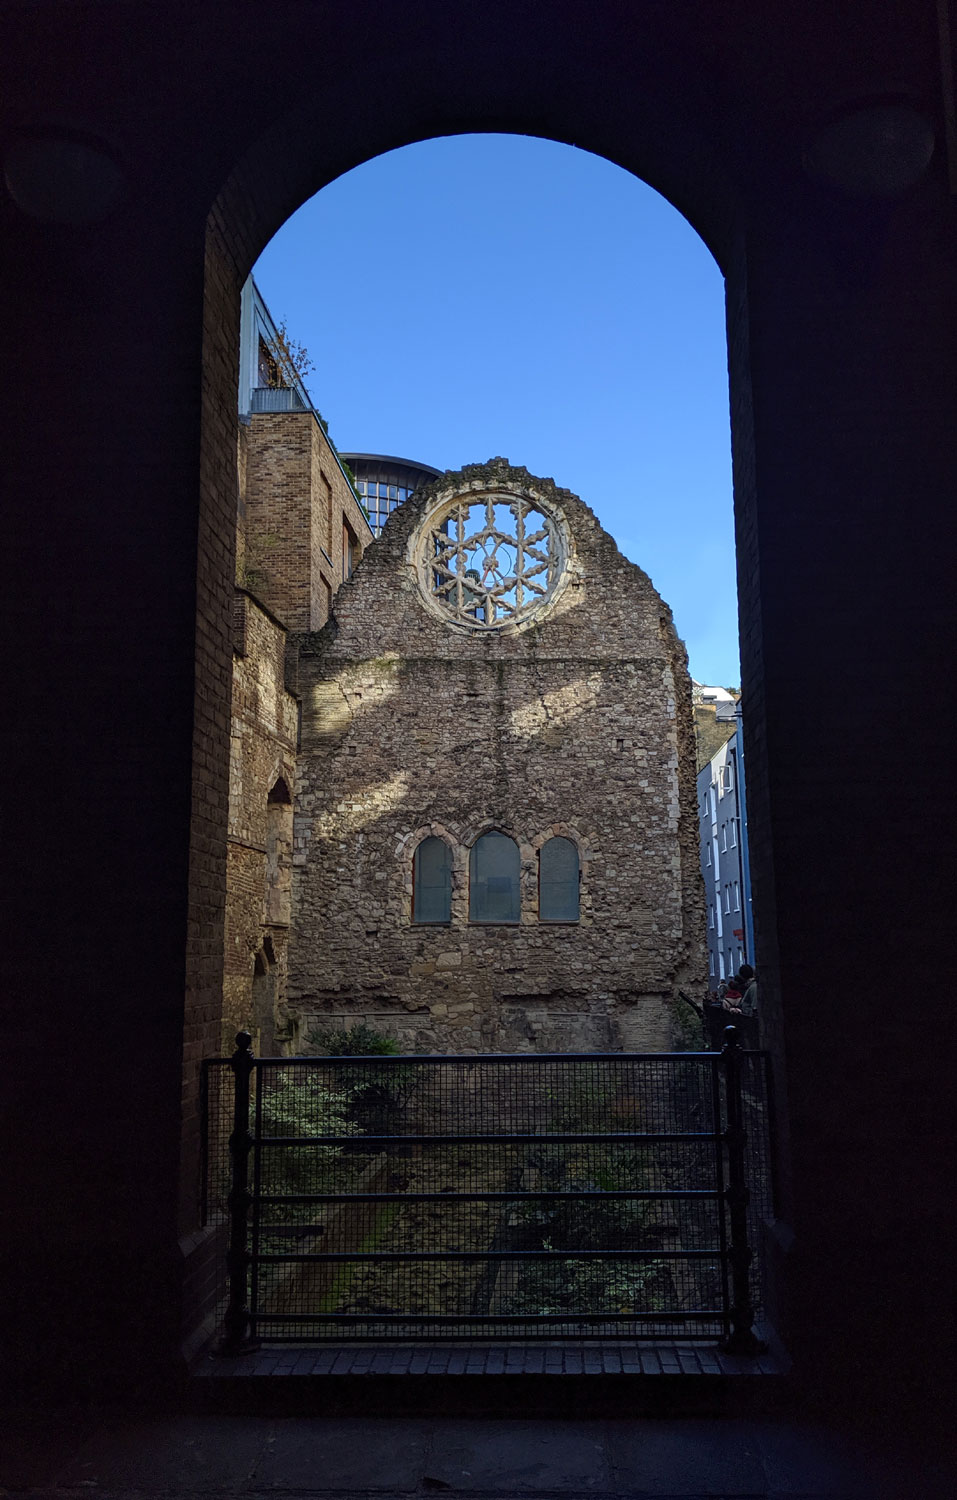 Winchester Palace, Pickford's Wharf, London, UK